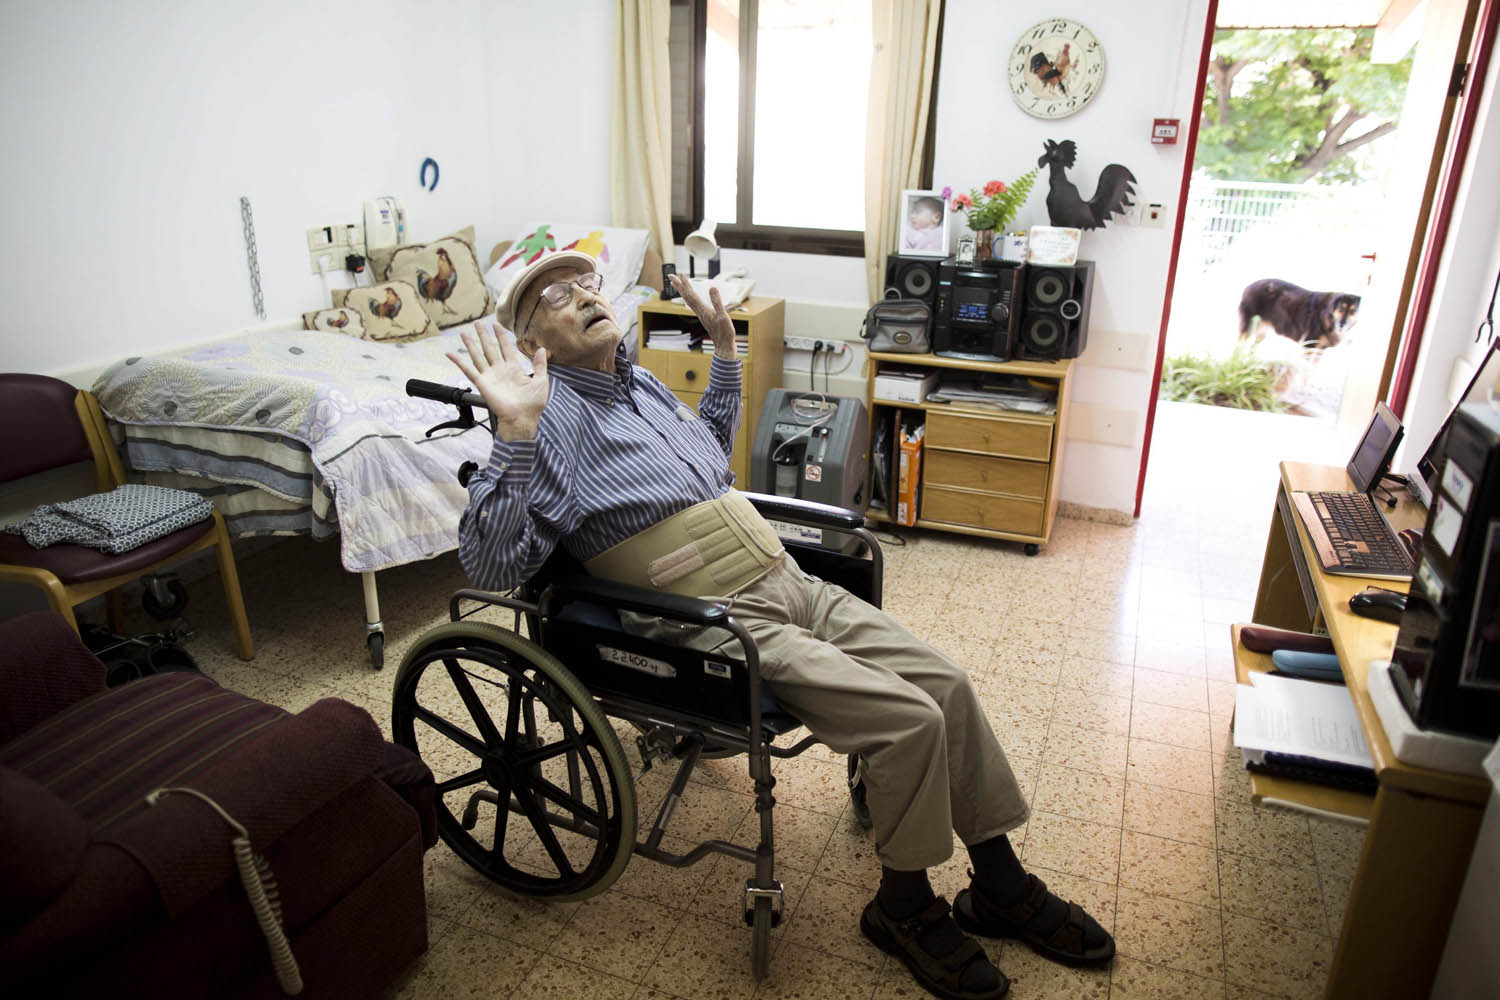 Holocaust survivor Moshe Roth, 81, a writer and painter born in Nancy, France, relaxes after smoking medical marijuana in the Hadarim Nursing home in Kibbutz Naan, near Rehovot, Israel on April 27, 2014.